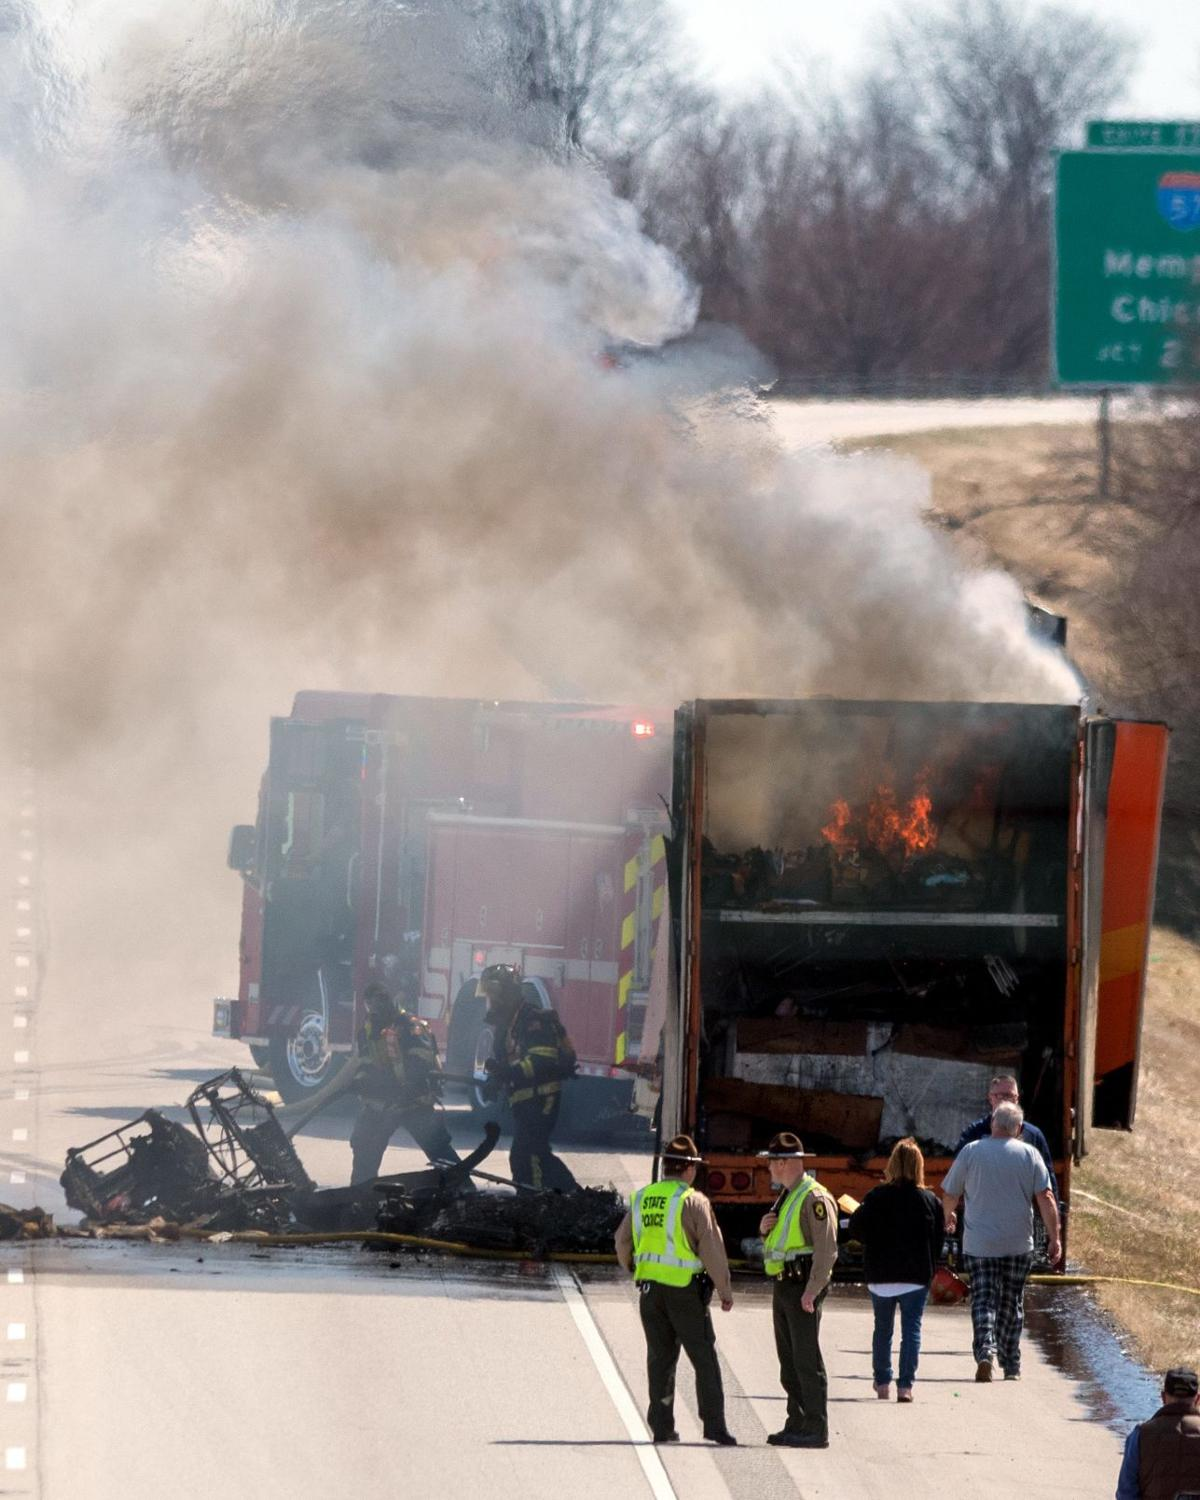 UPDATE: No one injured in I-74 truck fire, state police say